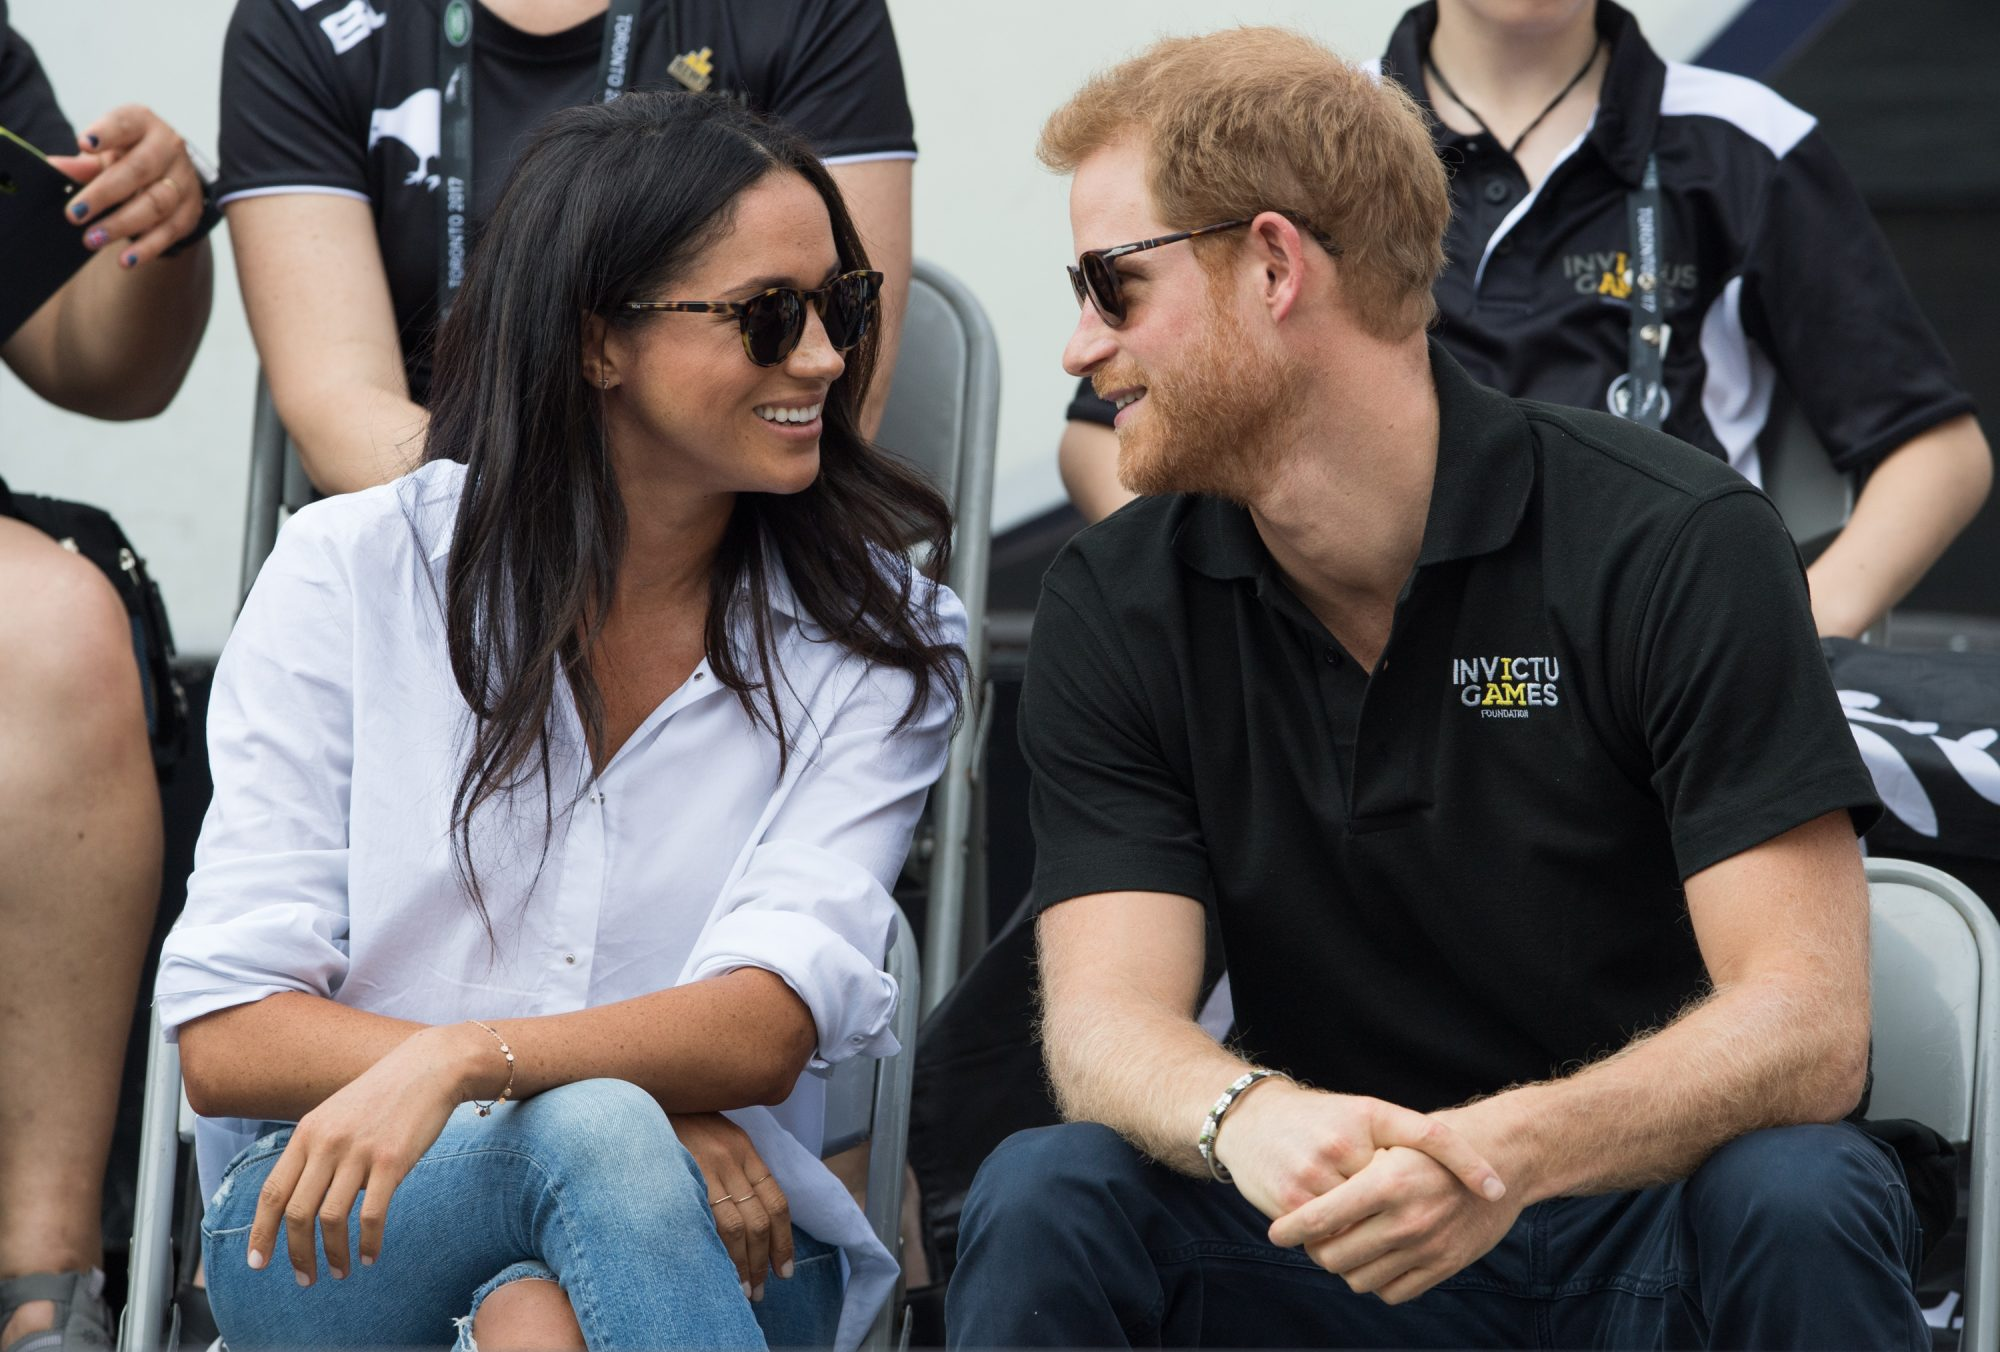 Prince Harry and Meghan Markle Public Appearance